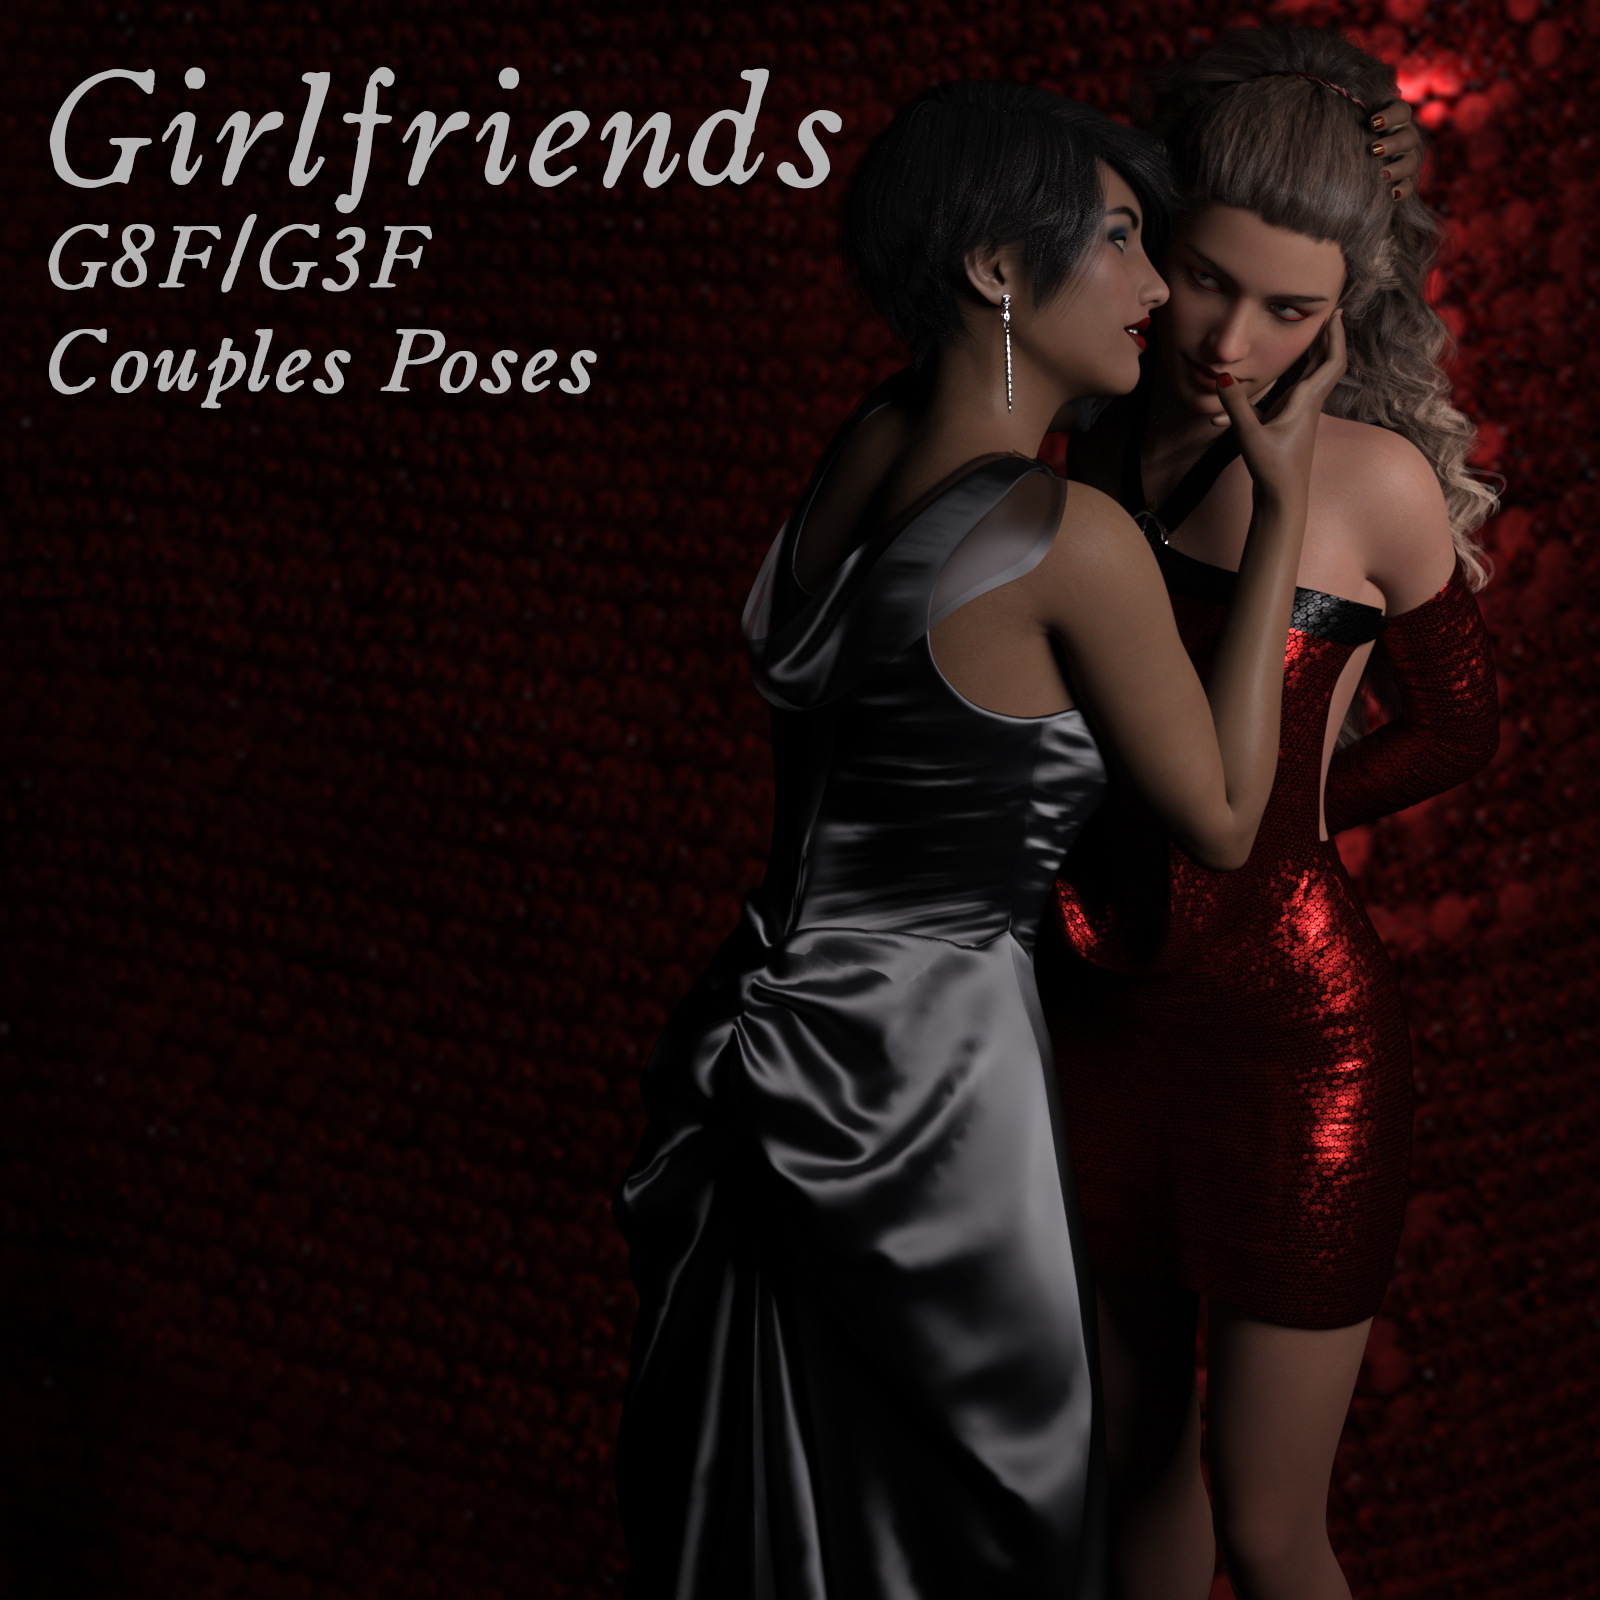 Girlfriends Couples Poses by aeris19